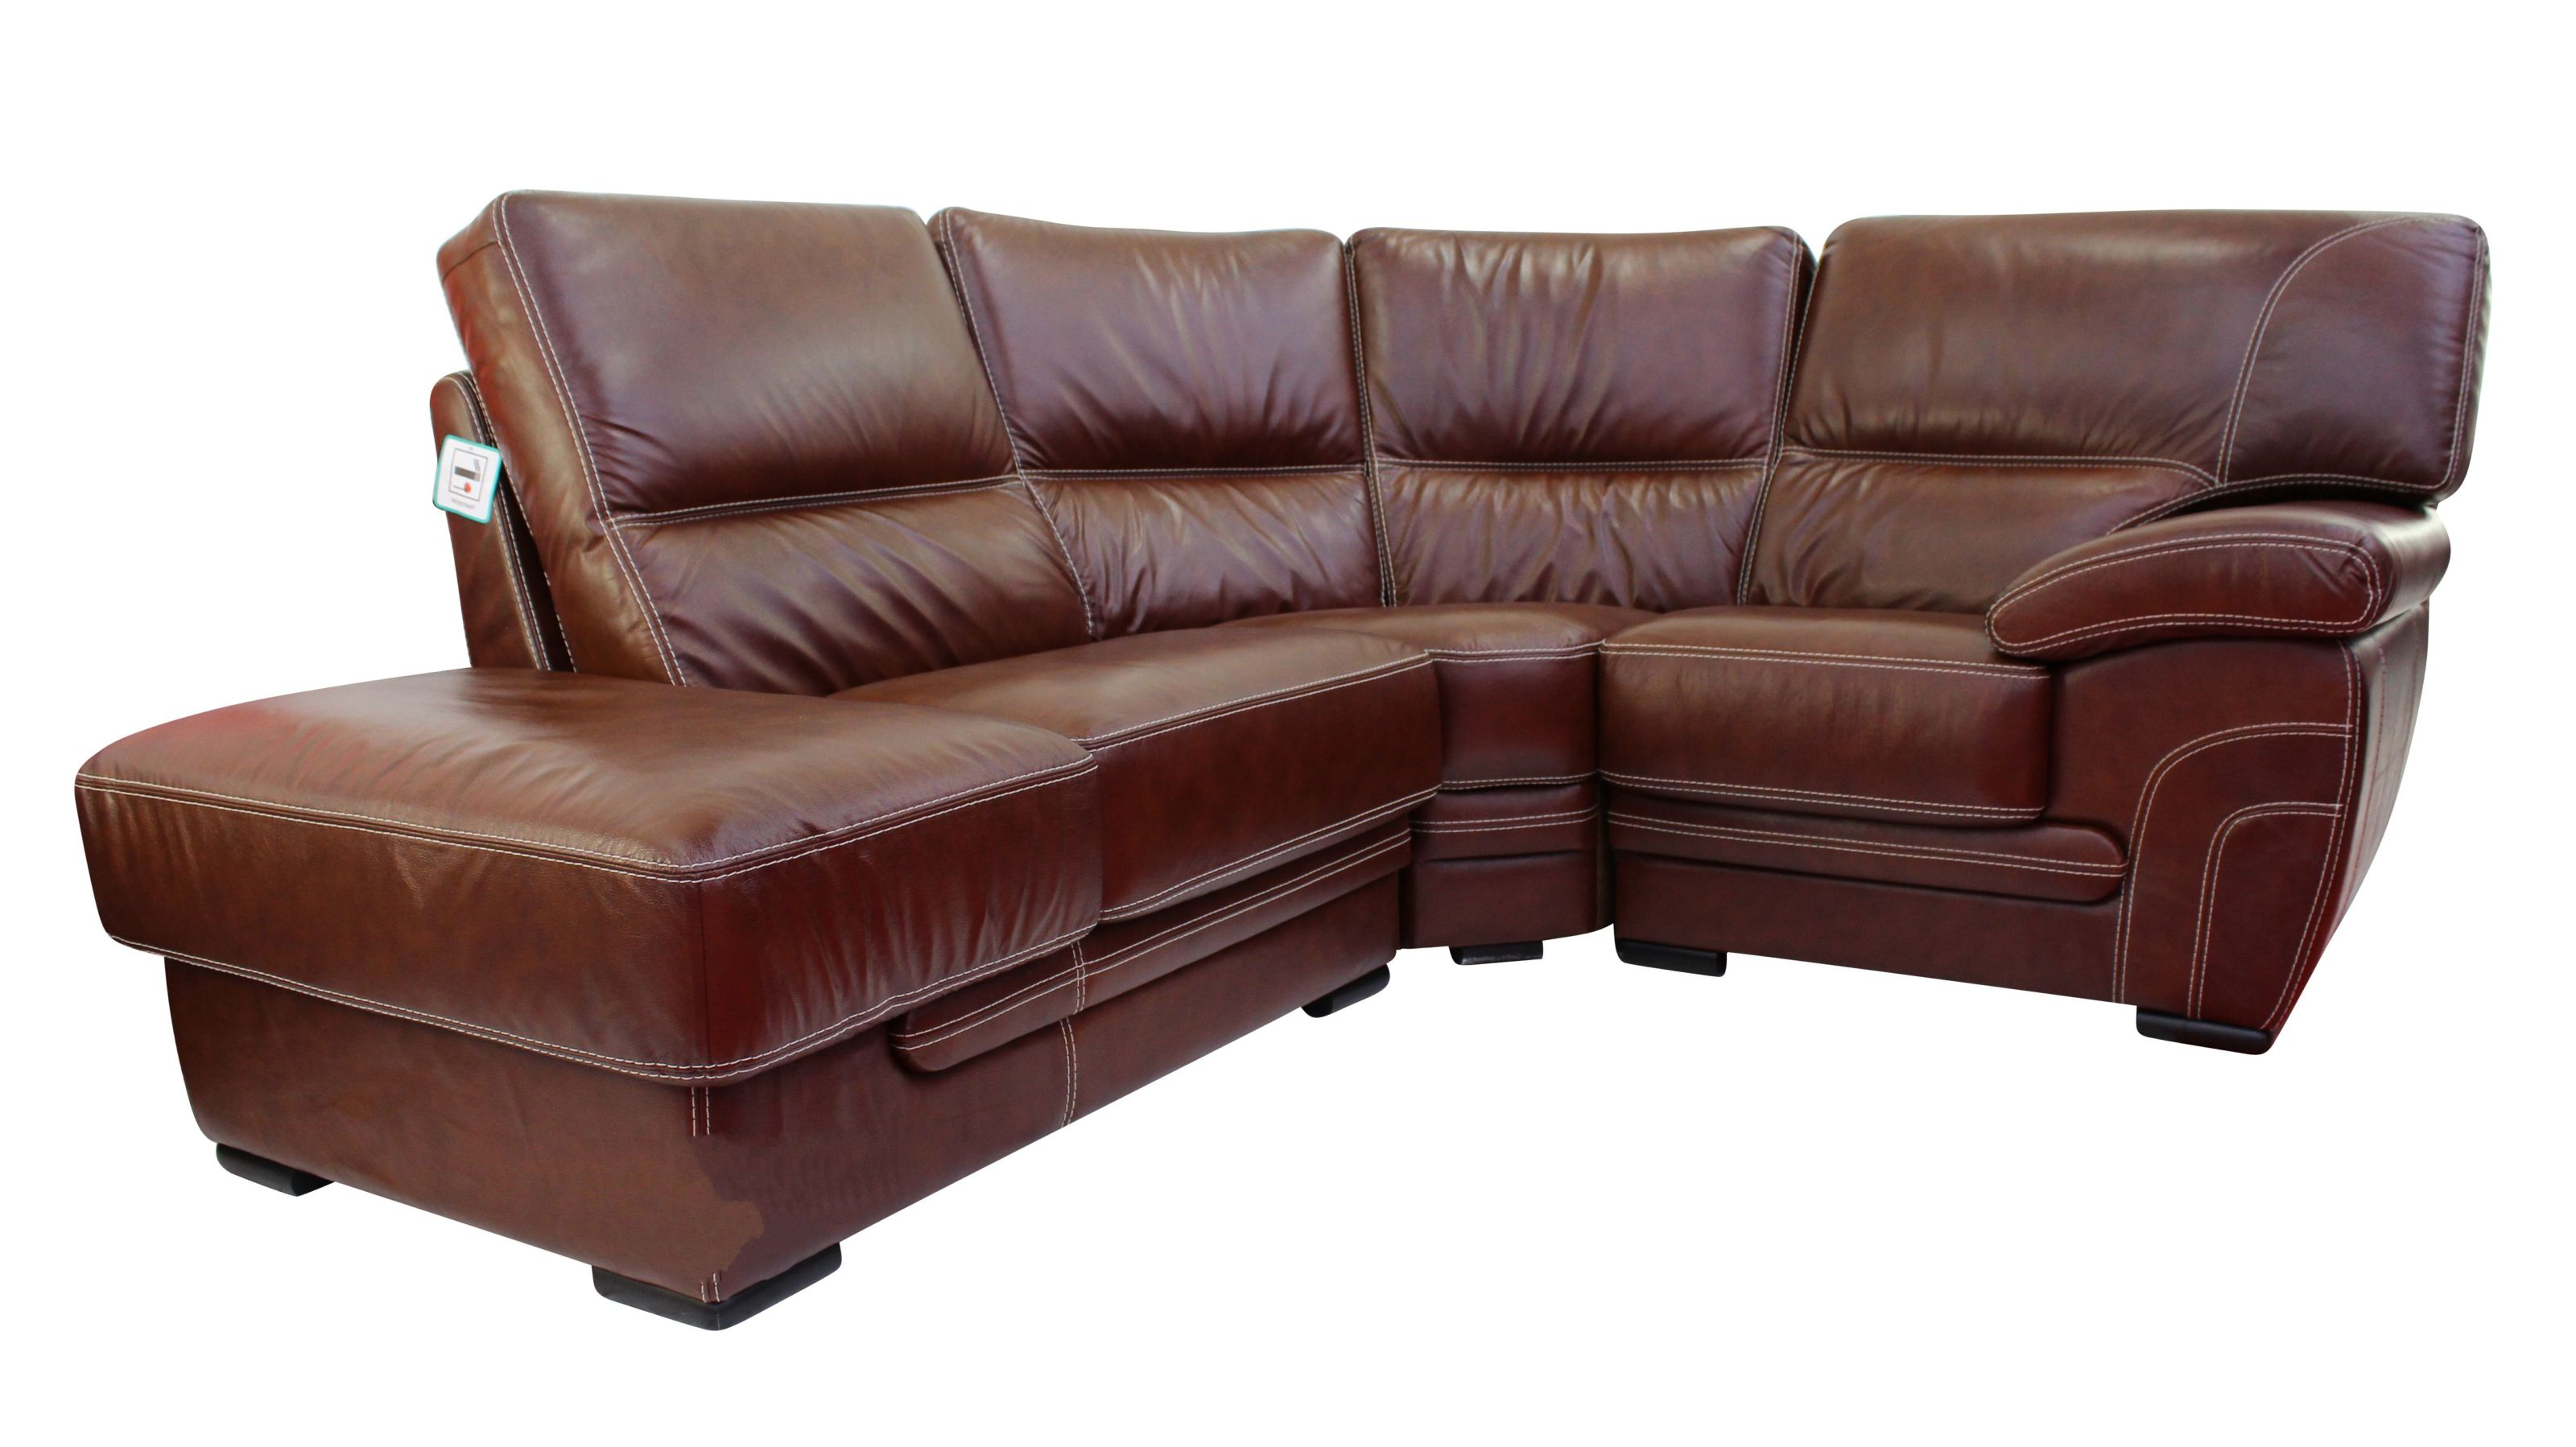 Georgia 1 + Corner + 1 Genuine Italian Tabak Brown Leather Corner Sofa  Group Suite Offer